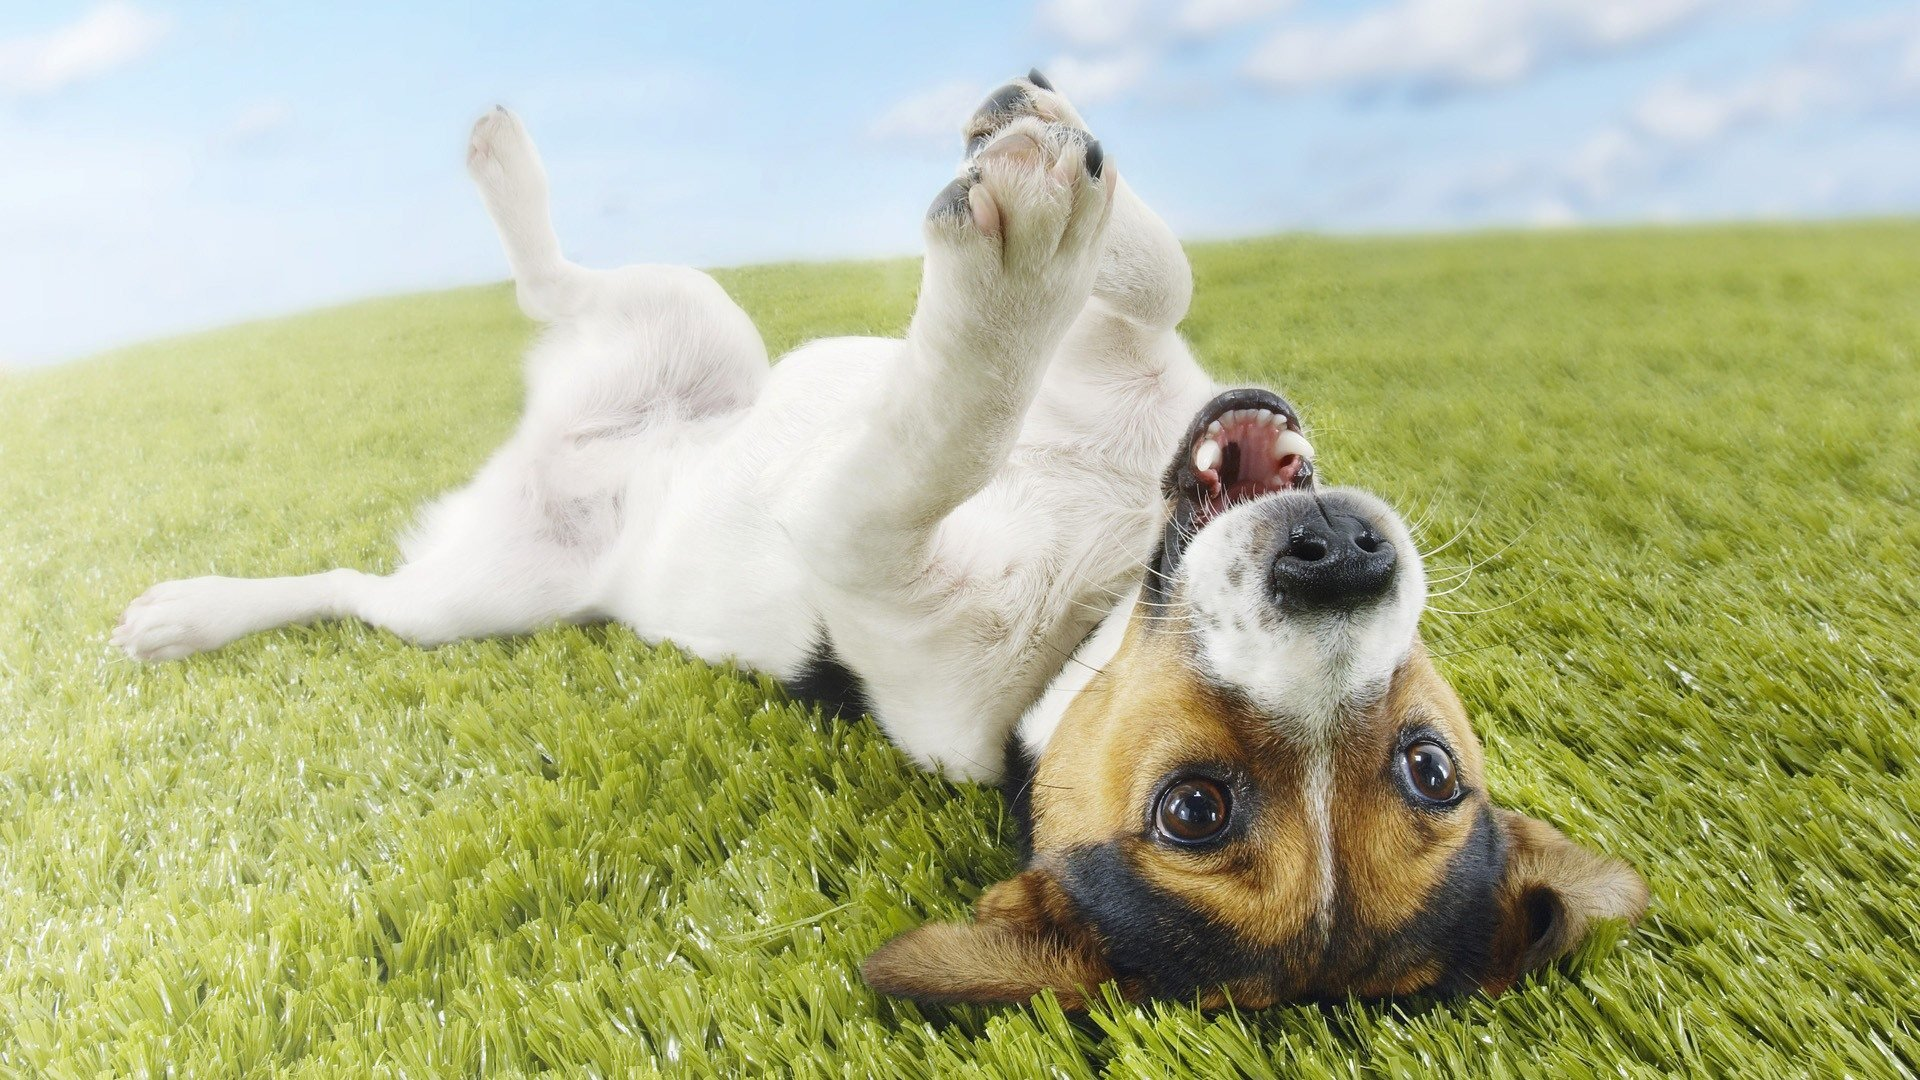 Funny Dog Backgrounds 26 Cool Wallpaper   Funnypictureorg 1920x1080